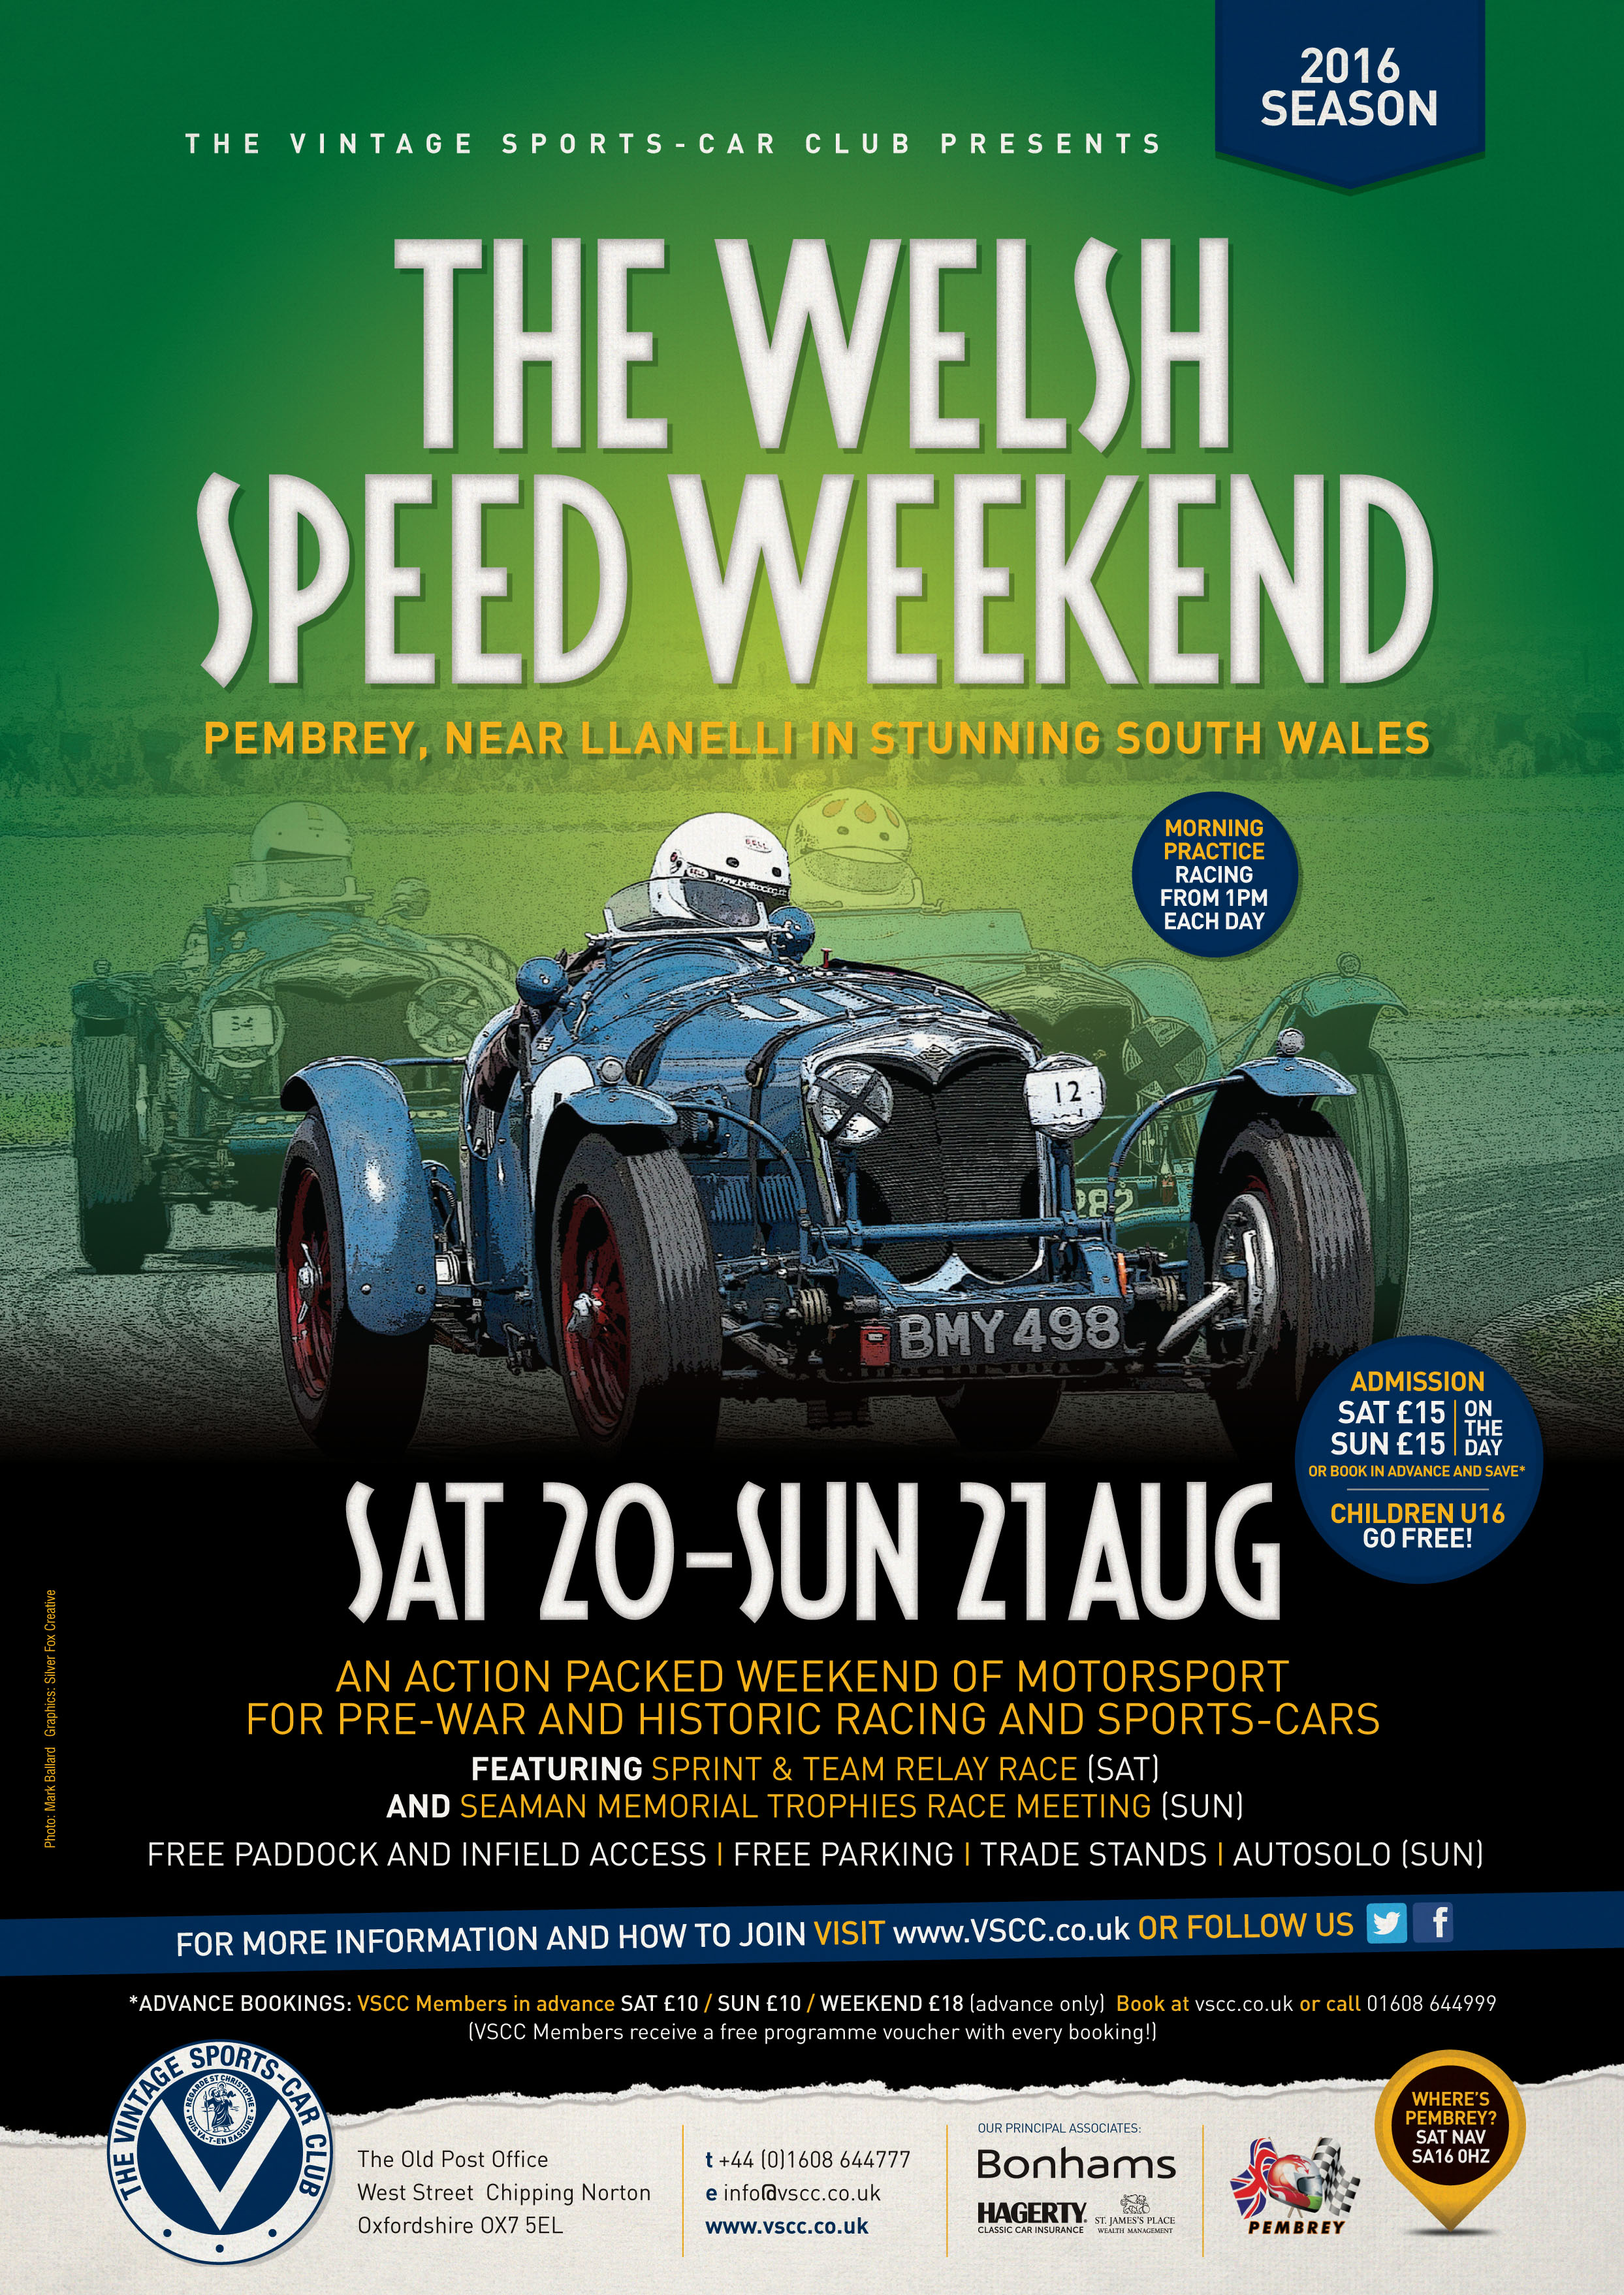 Pembrey awaits the VSCC for an epic weekend of Vintage motorsport cover